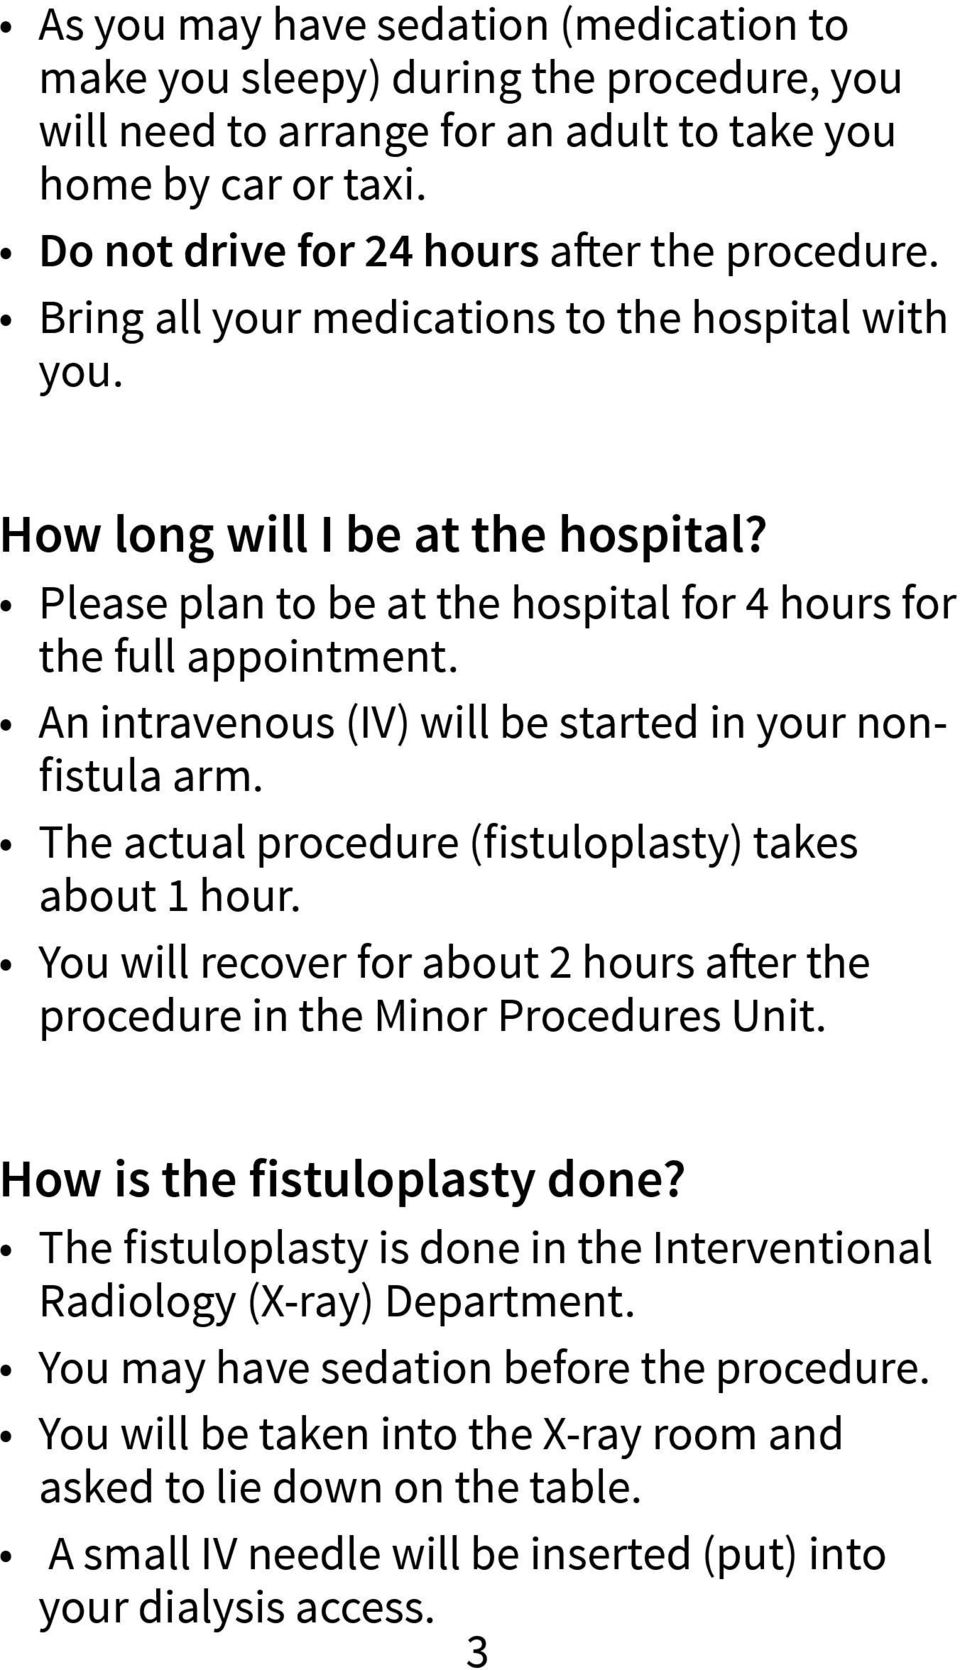 An intravenous (IV) will be started in your nonfistula arm. The actual procedure (fistuloplasty) takes about 1 hour.